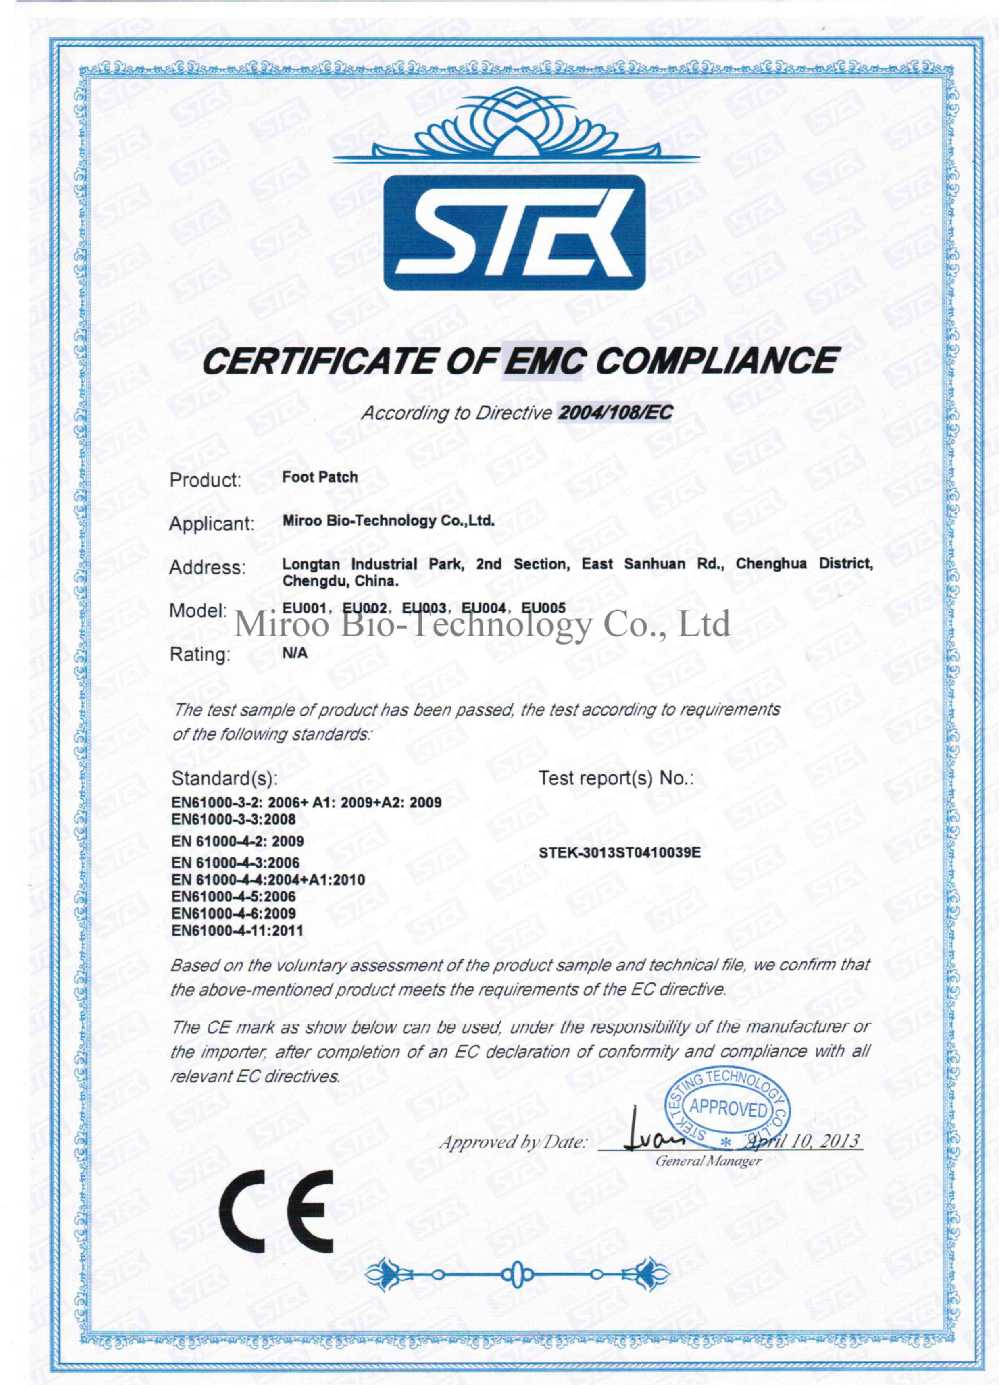 CE certificate of foot patch